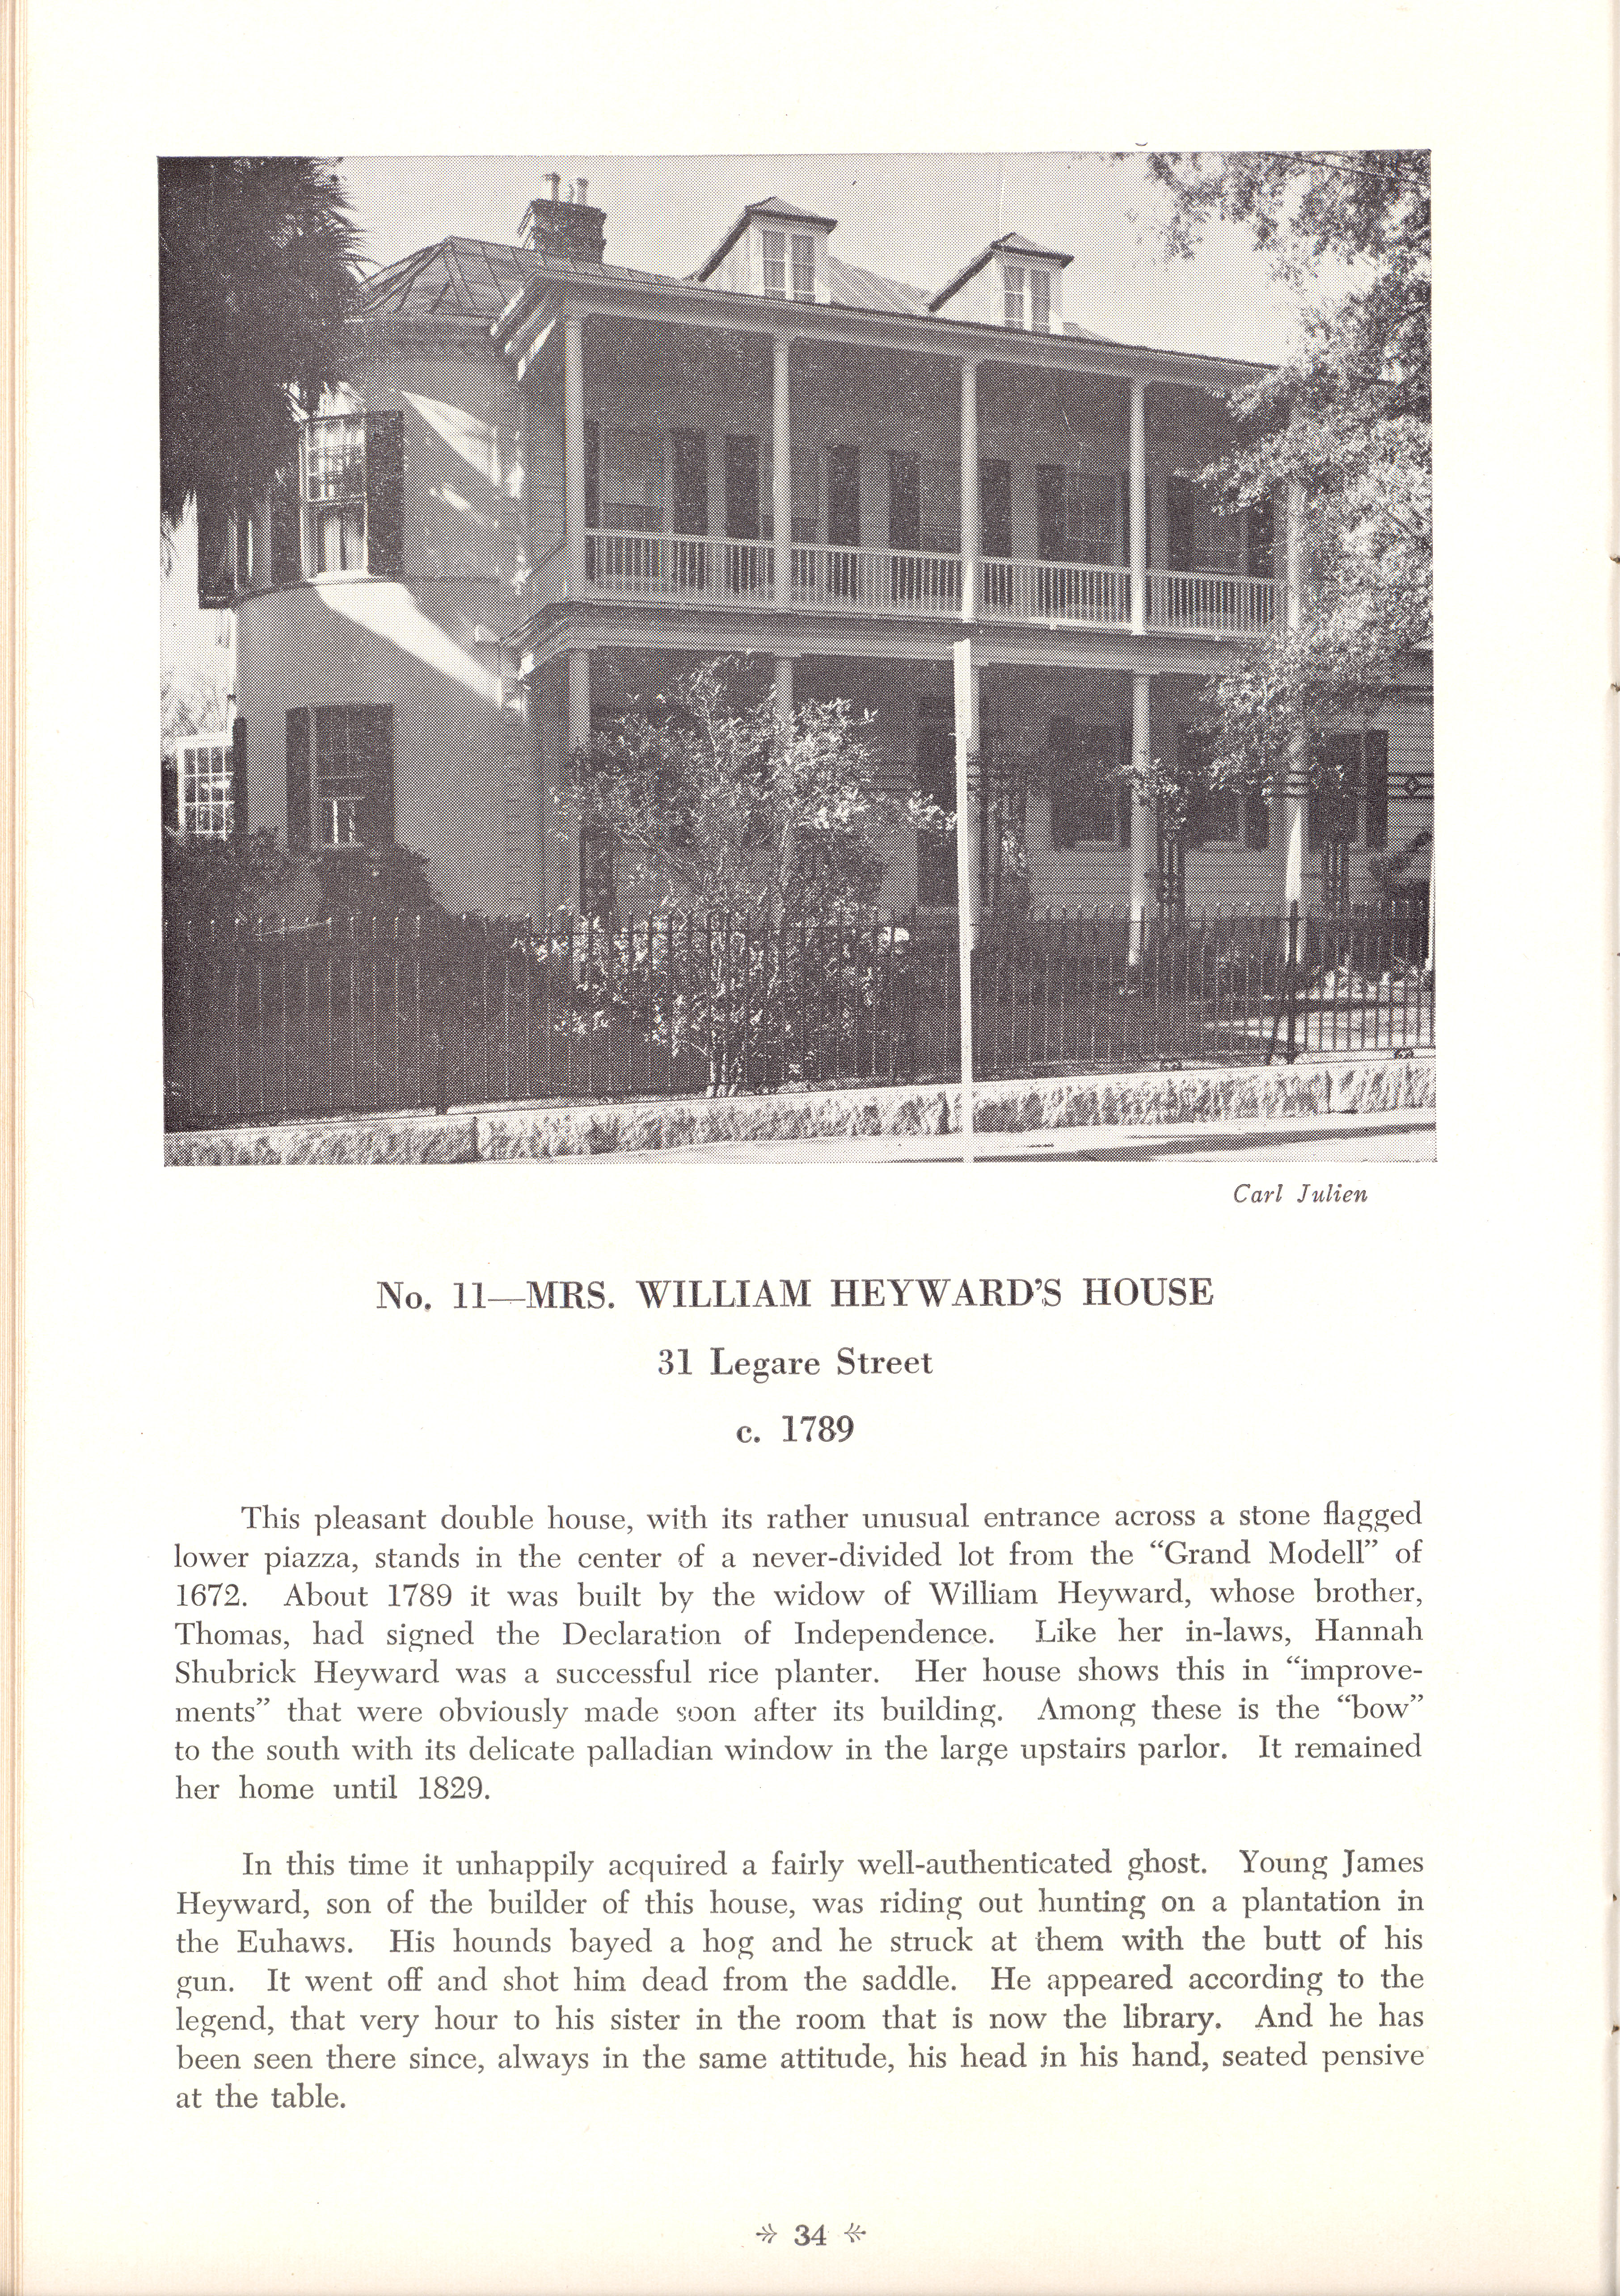 Page 34:  No. 11 - Mrs. William Heyward's House, 31 Legare Street, c. 1789